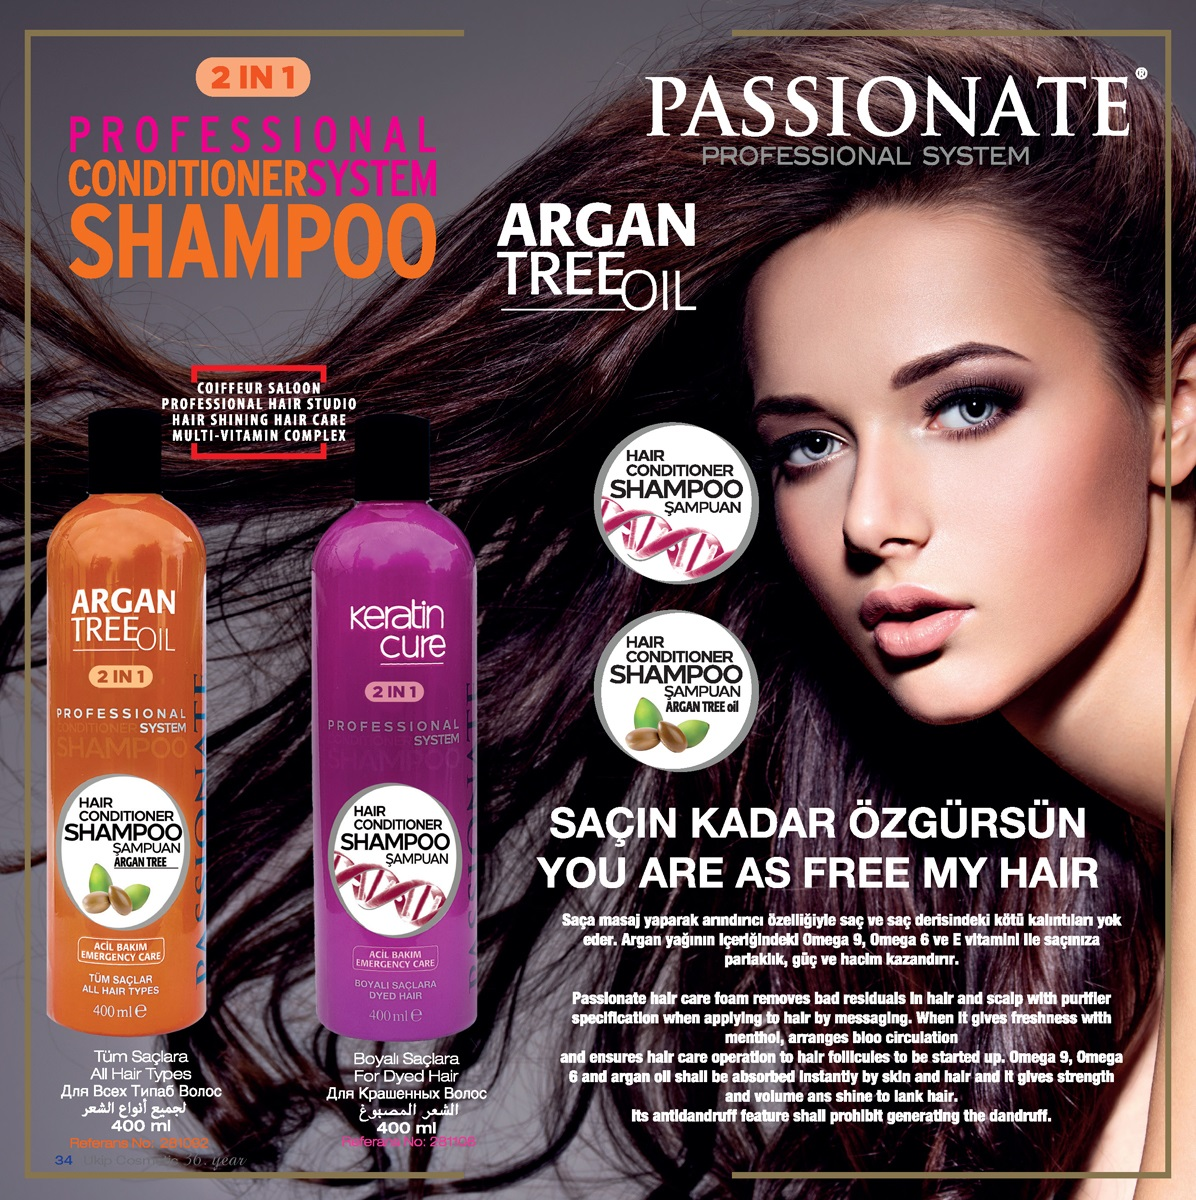 Passionate Professional System 2 in 1 Conditioner Shampoo